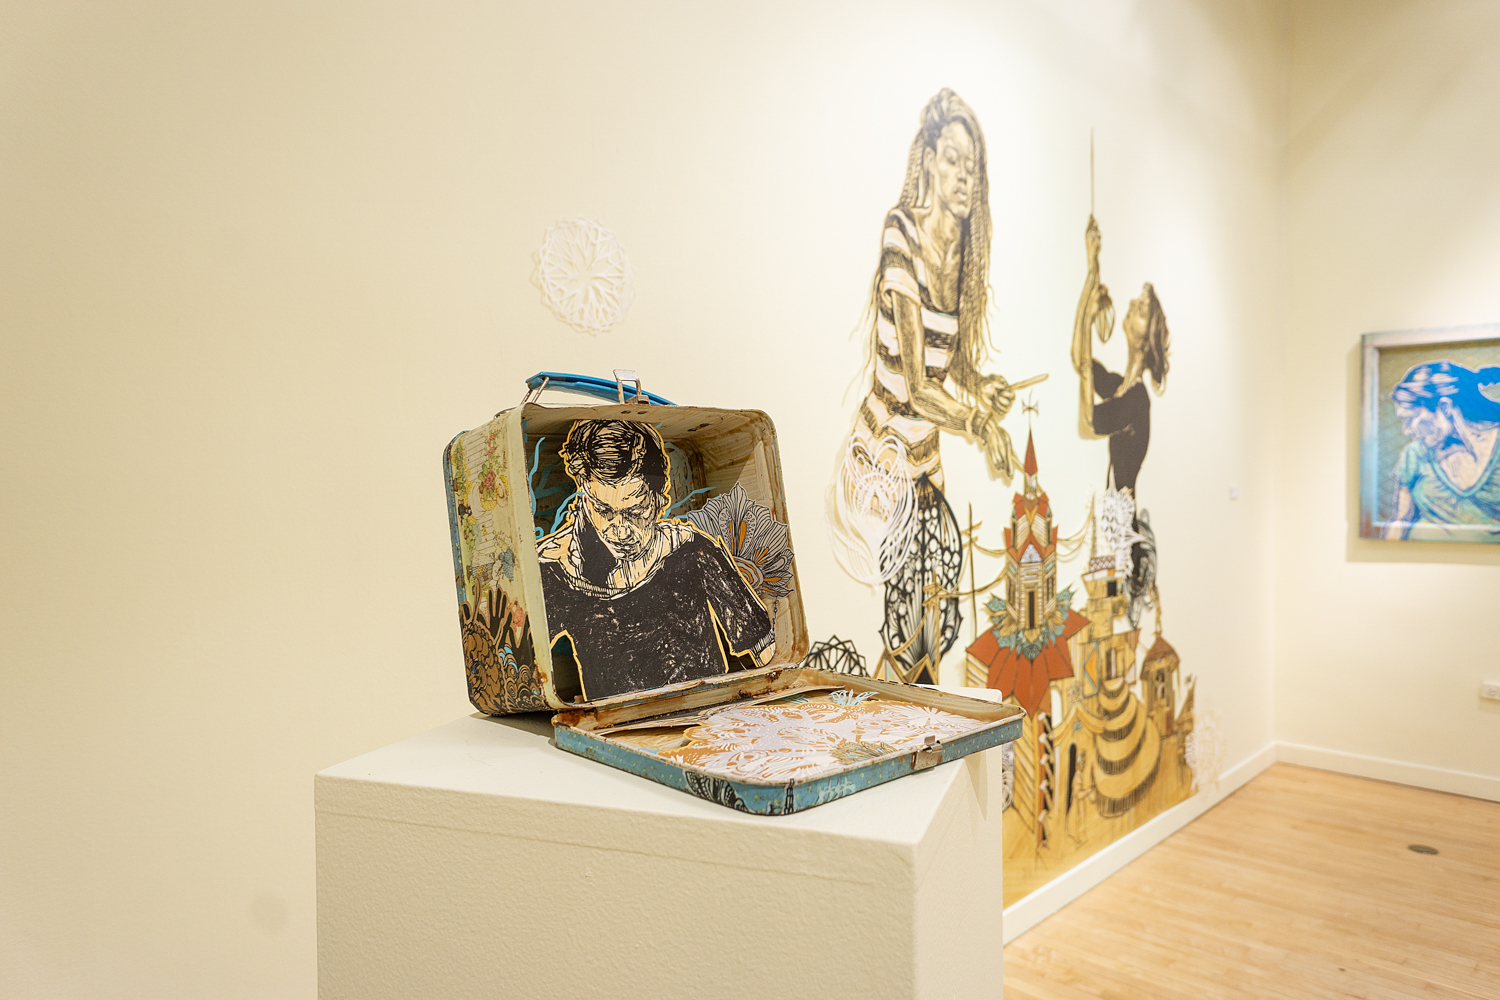 Swoon - Every Portrait Is A Vessel - Treason Gallery